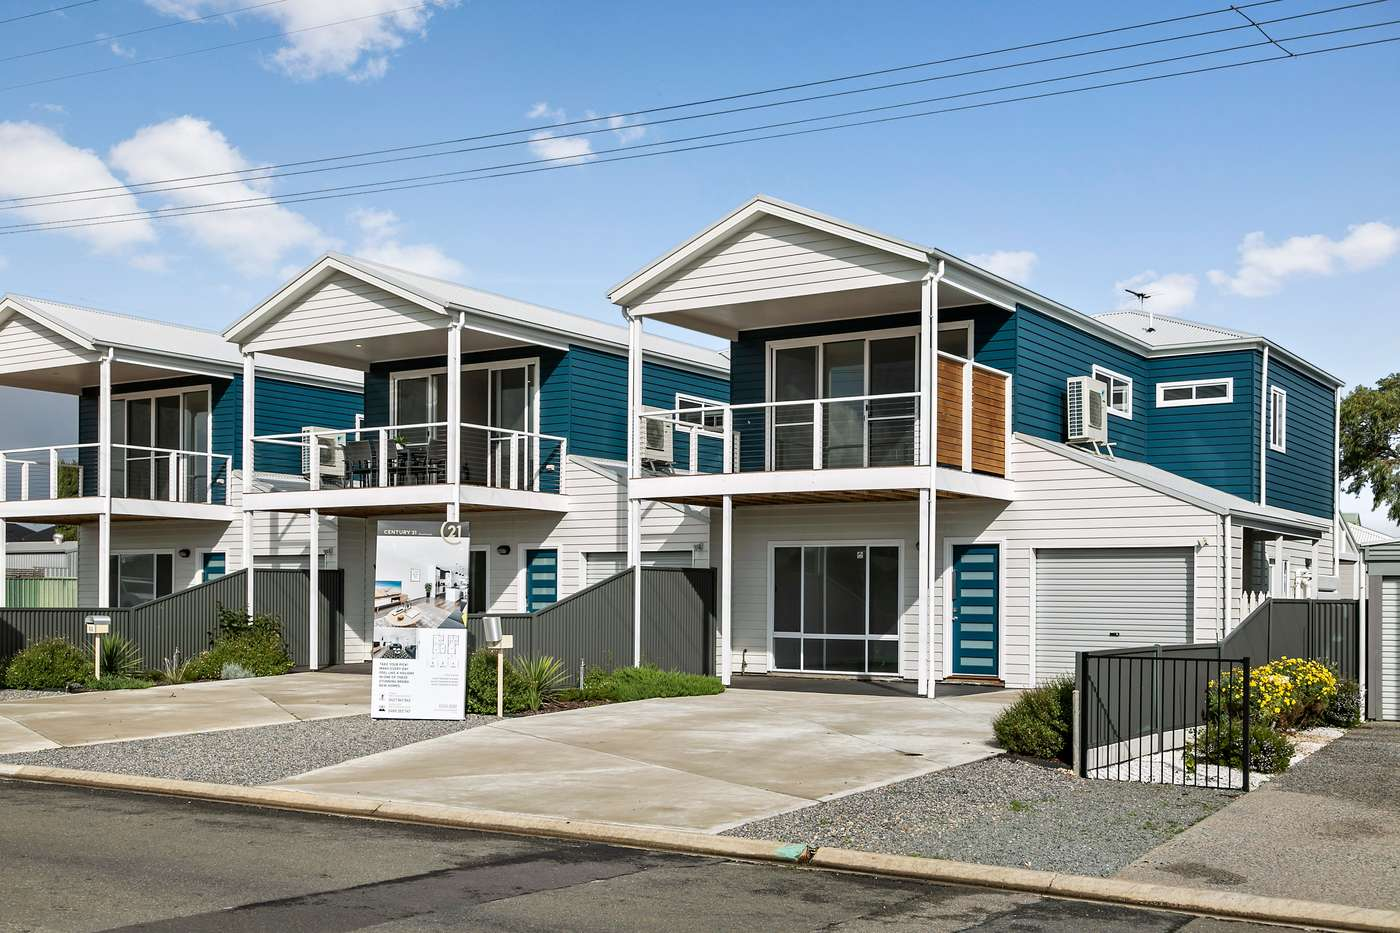 Main view of Homely house listing, 4 - 4b Butterworth Road, Aldinga Beach, SA 5173